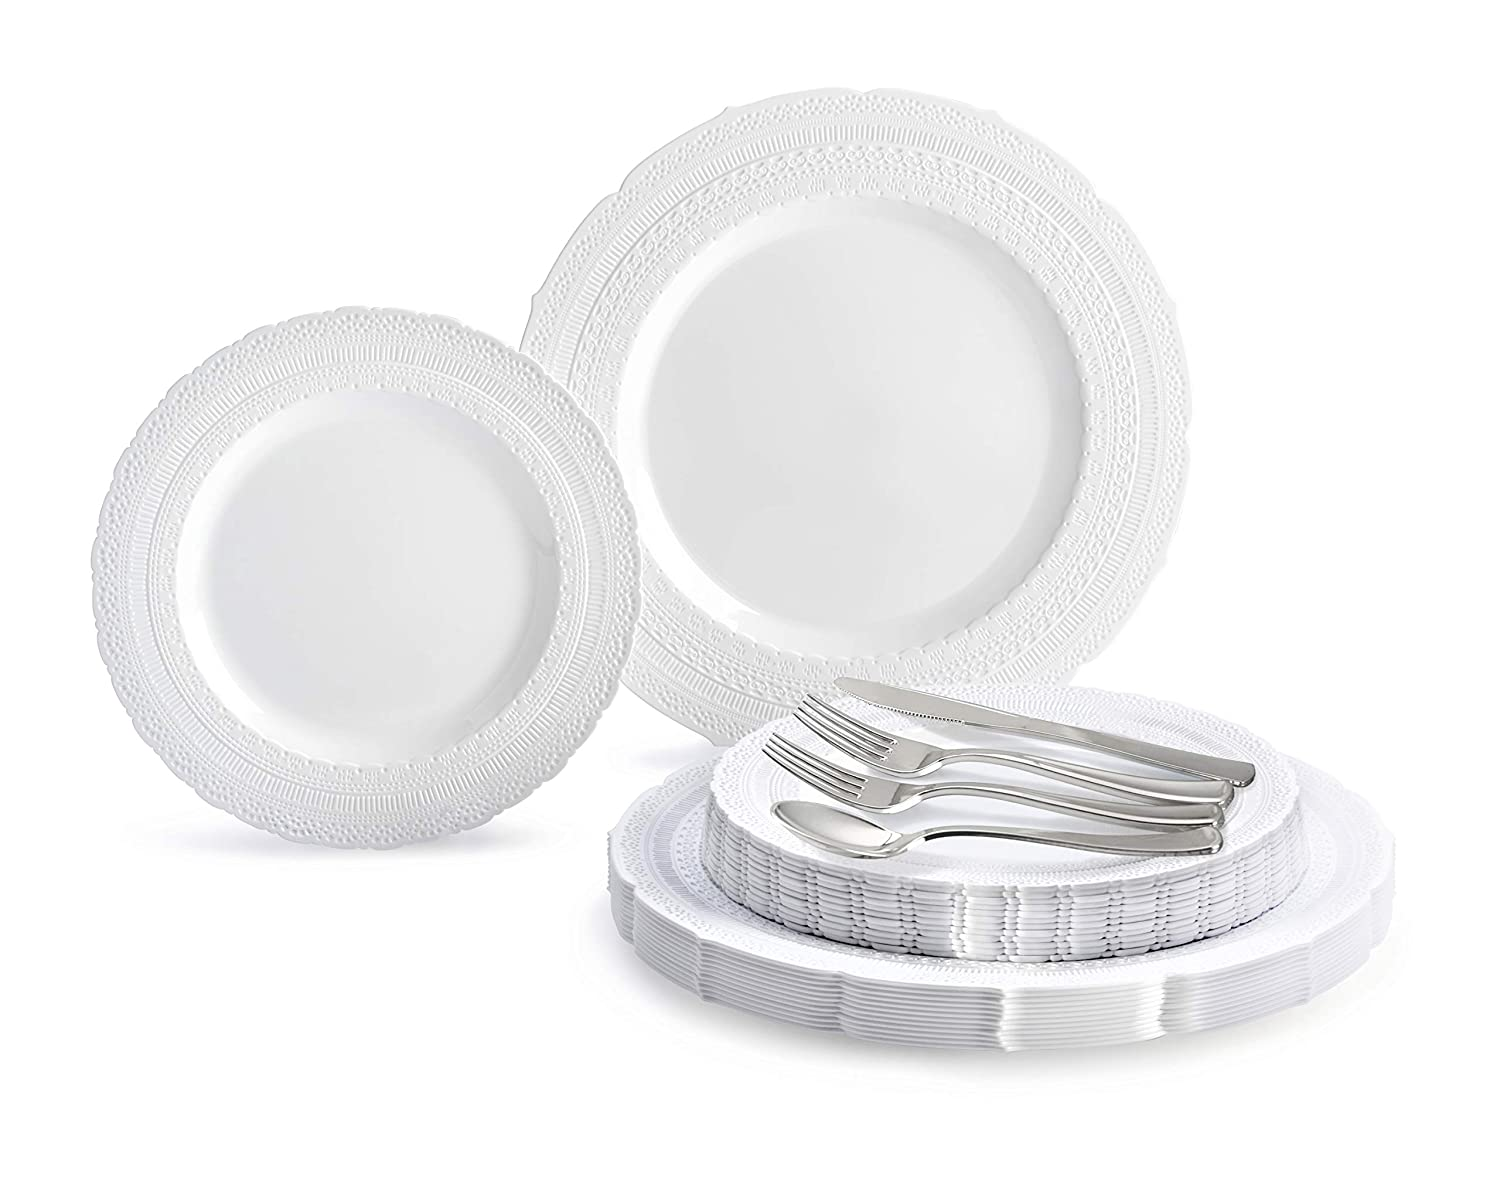 E. Chateau in White 150 Piece (25 Guest) OCCASIONS 720 PCS   120 GUEST Wedding Disposable Plastic Plate and Silverware Combo Set (Diamond White Silver Plates, Silver Silverware)